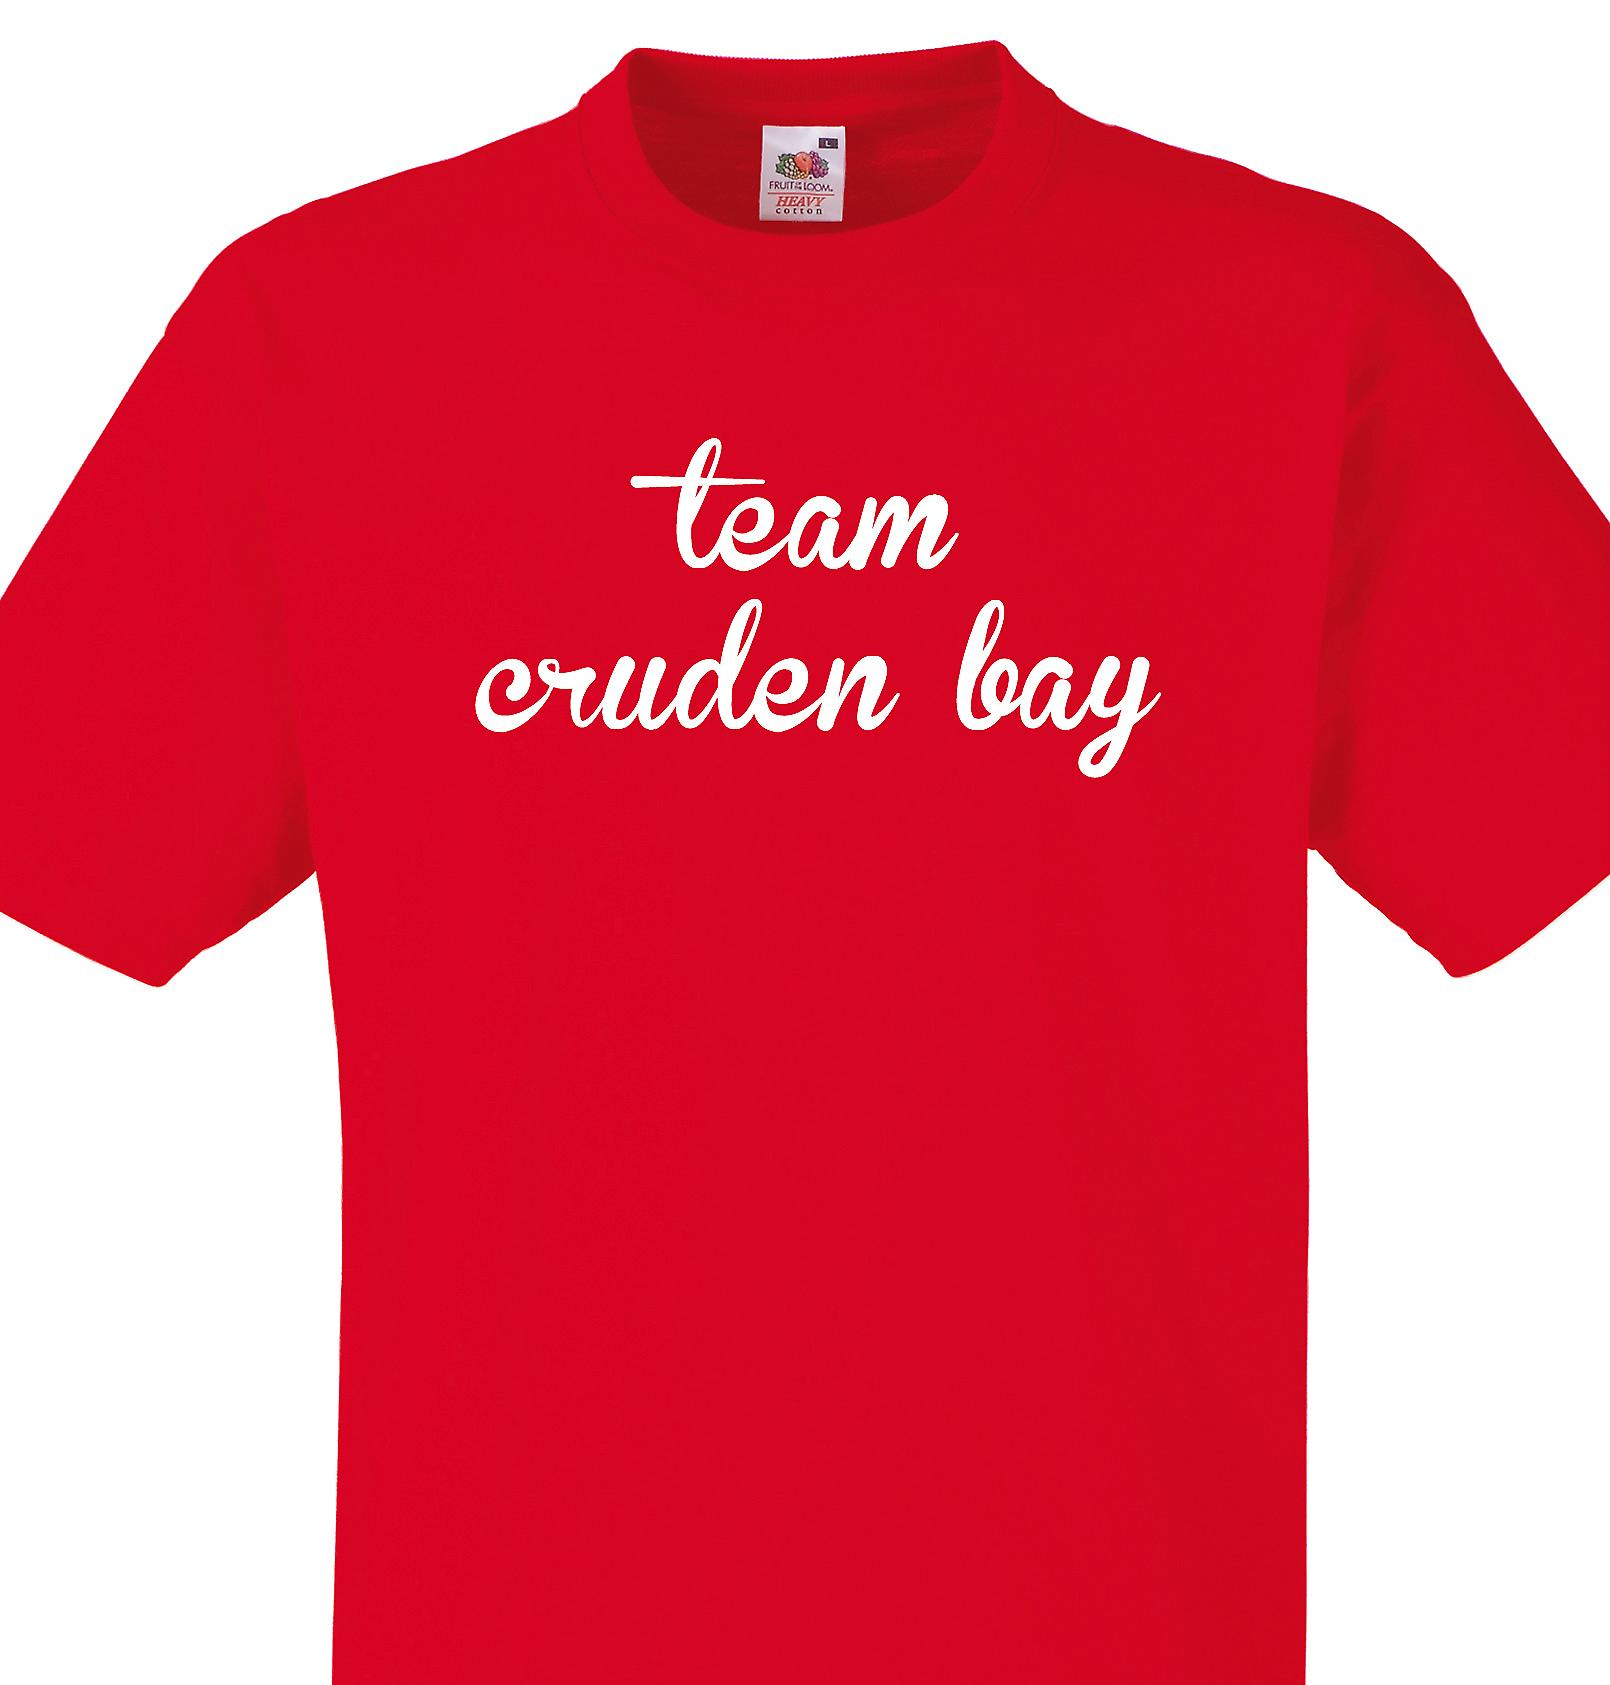 Team Cruden bay Red T shirt